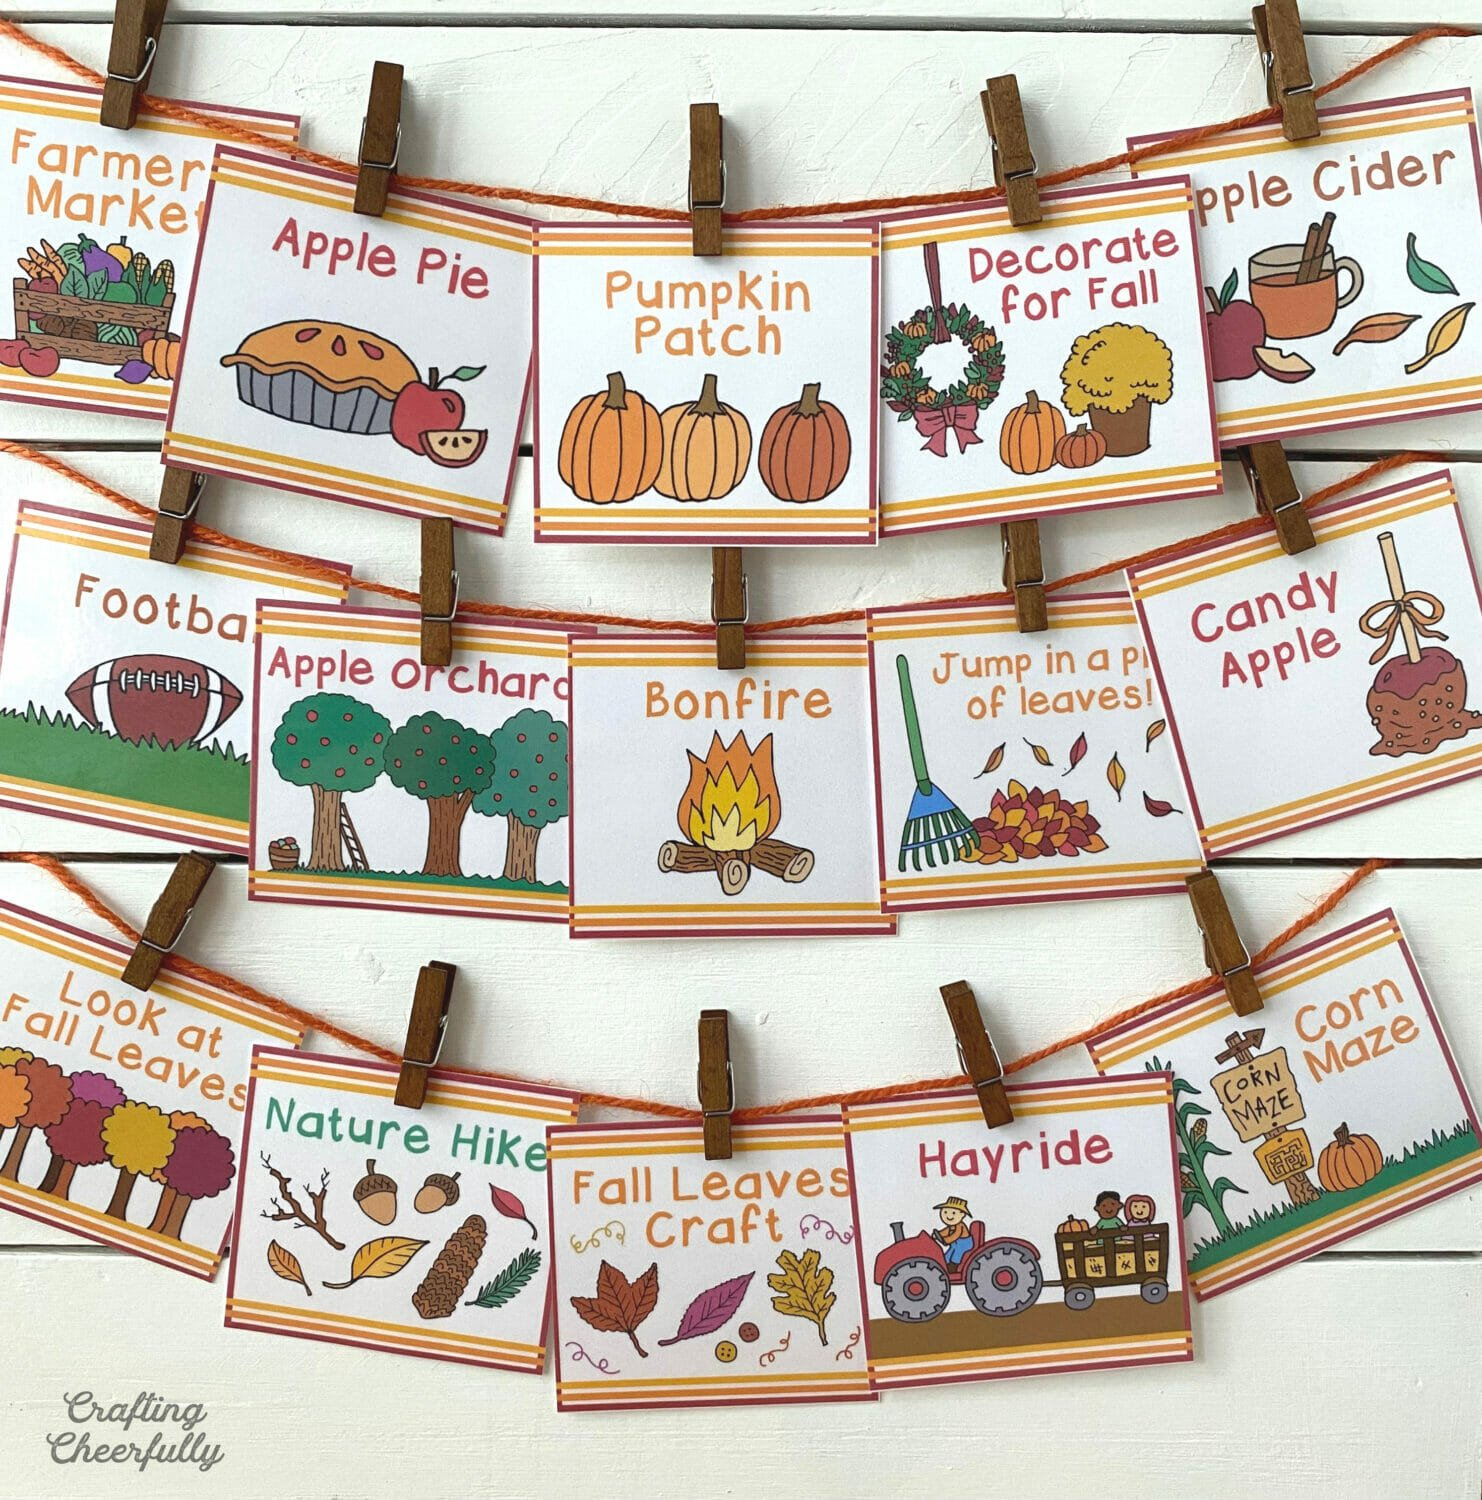 Fall bucket list activity cards clipped to a board.